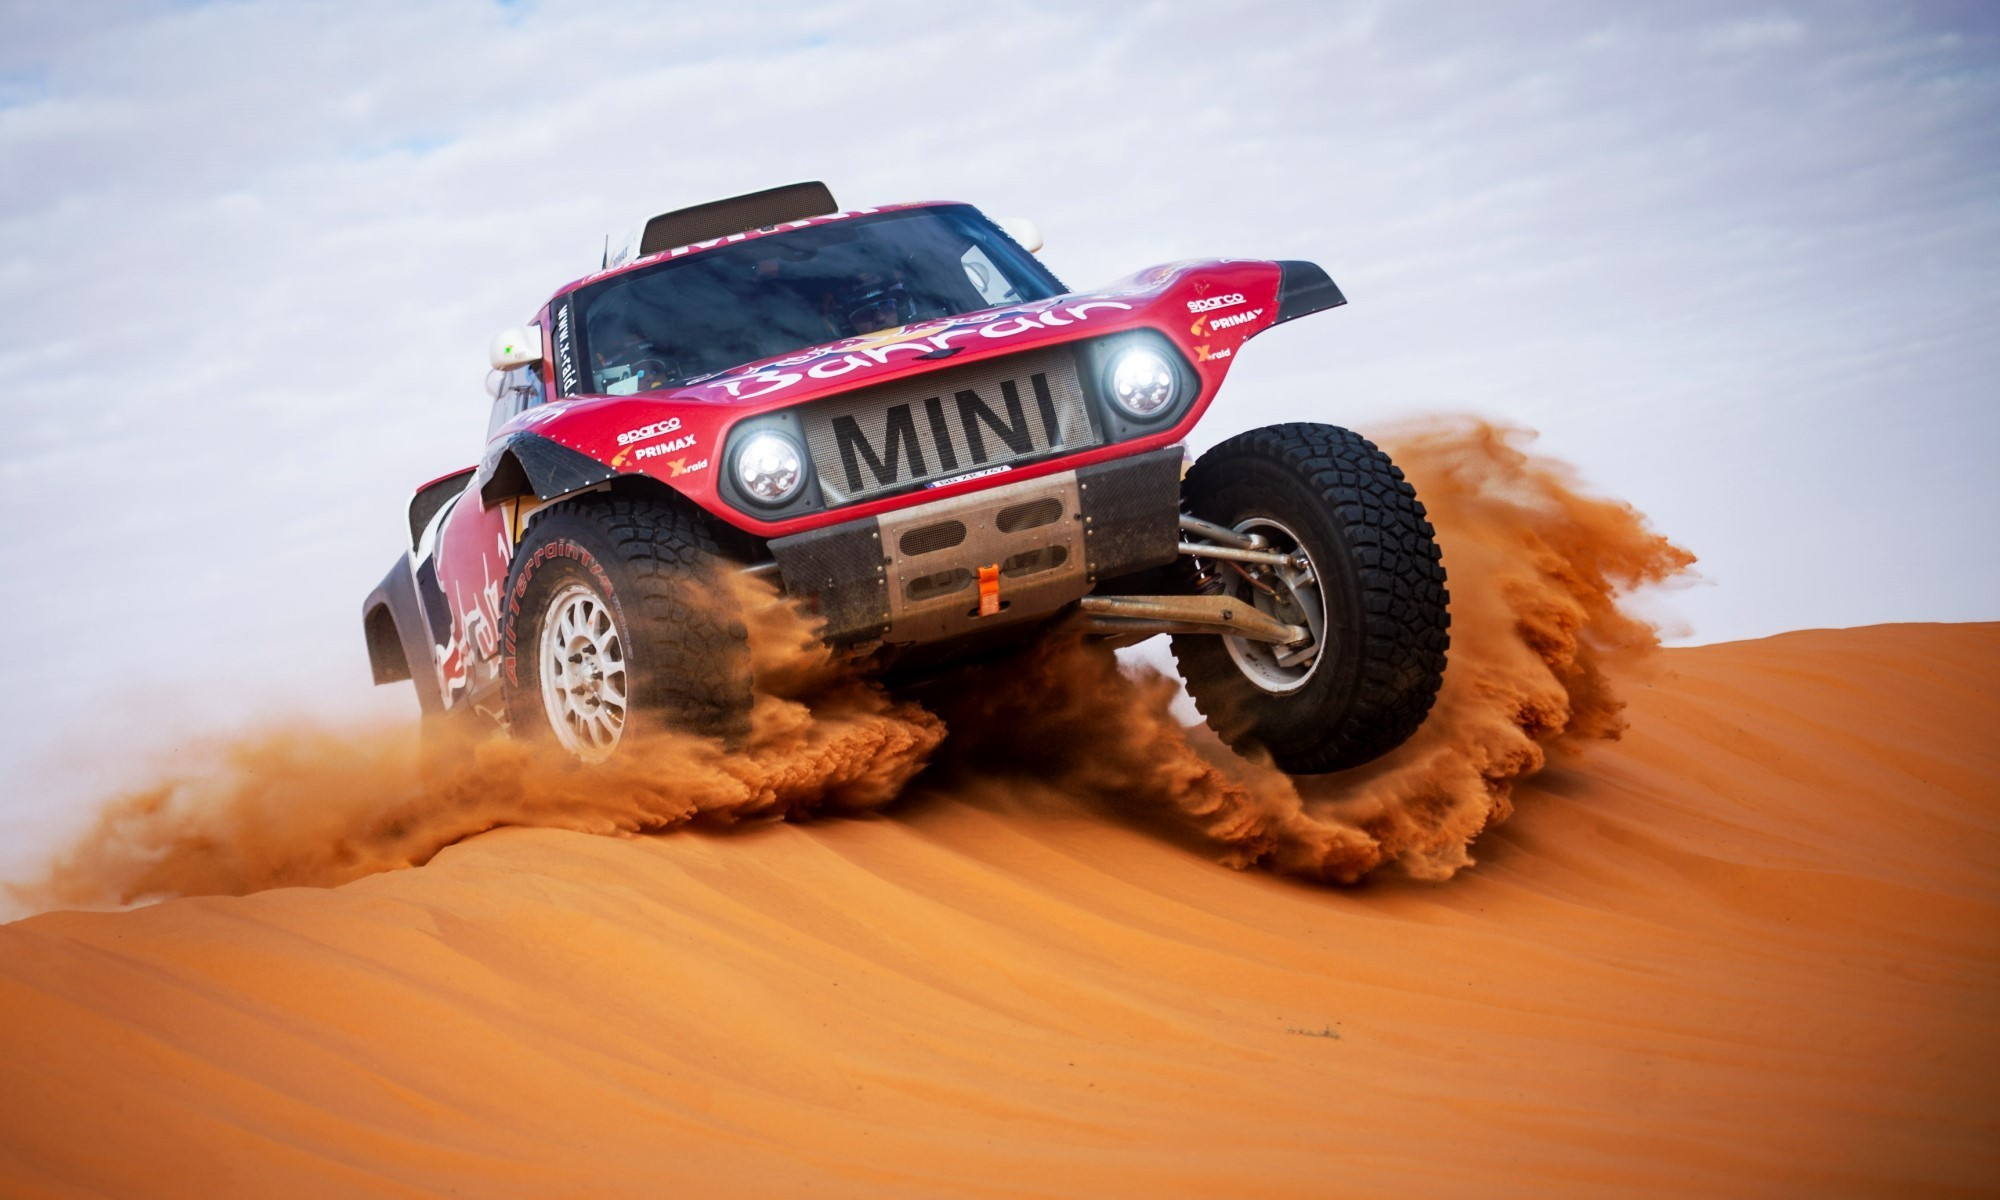 Carlos Sainz claimed his third overall victory in the 2020 Dakar